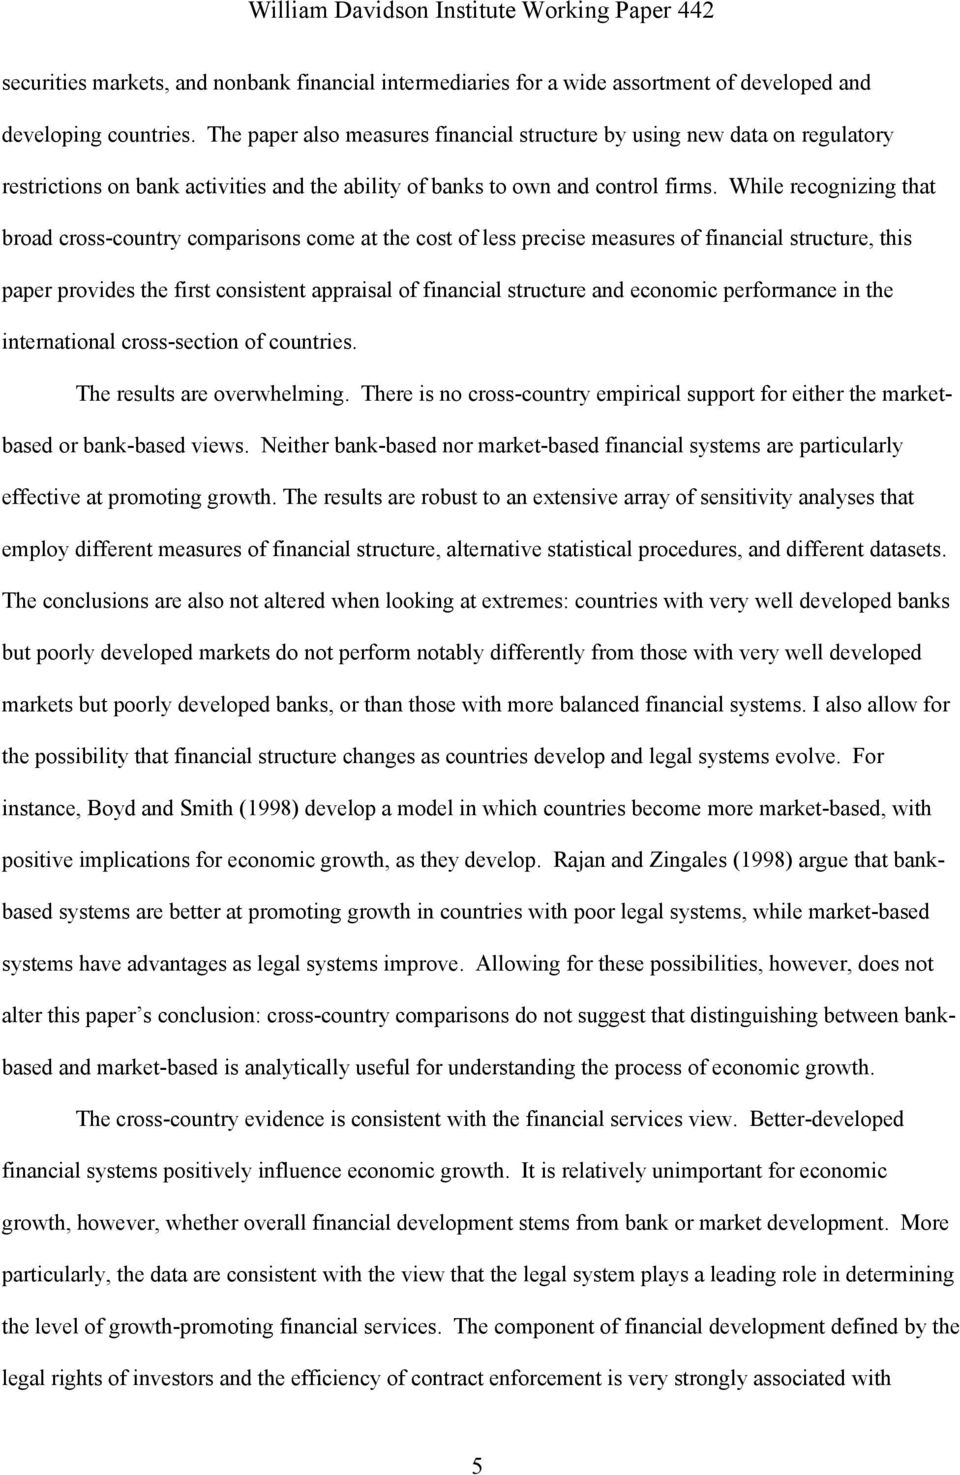 While recognizing that broad cross-country comparisons come at the cost of less precise measures of financial structure, this paper provides the first consistent appraisal of financial structure and